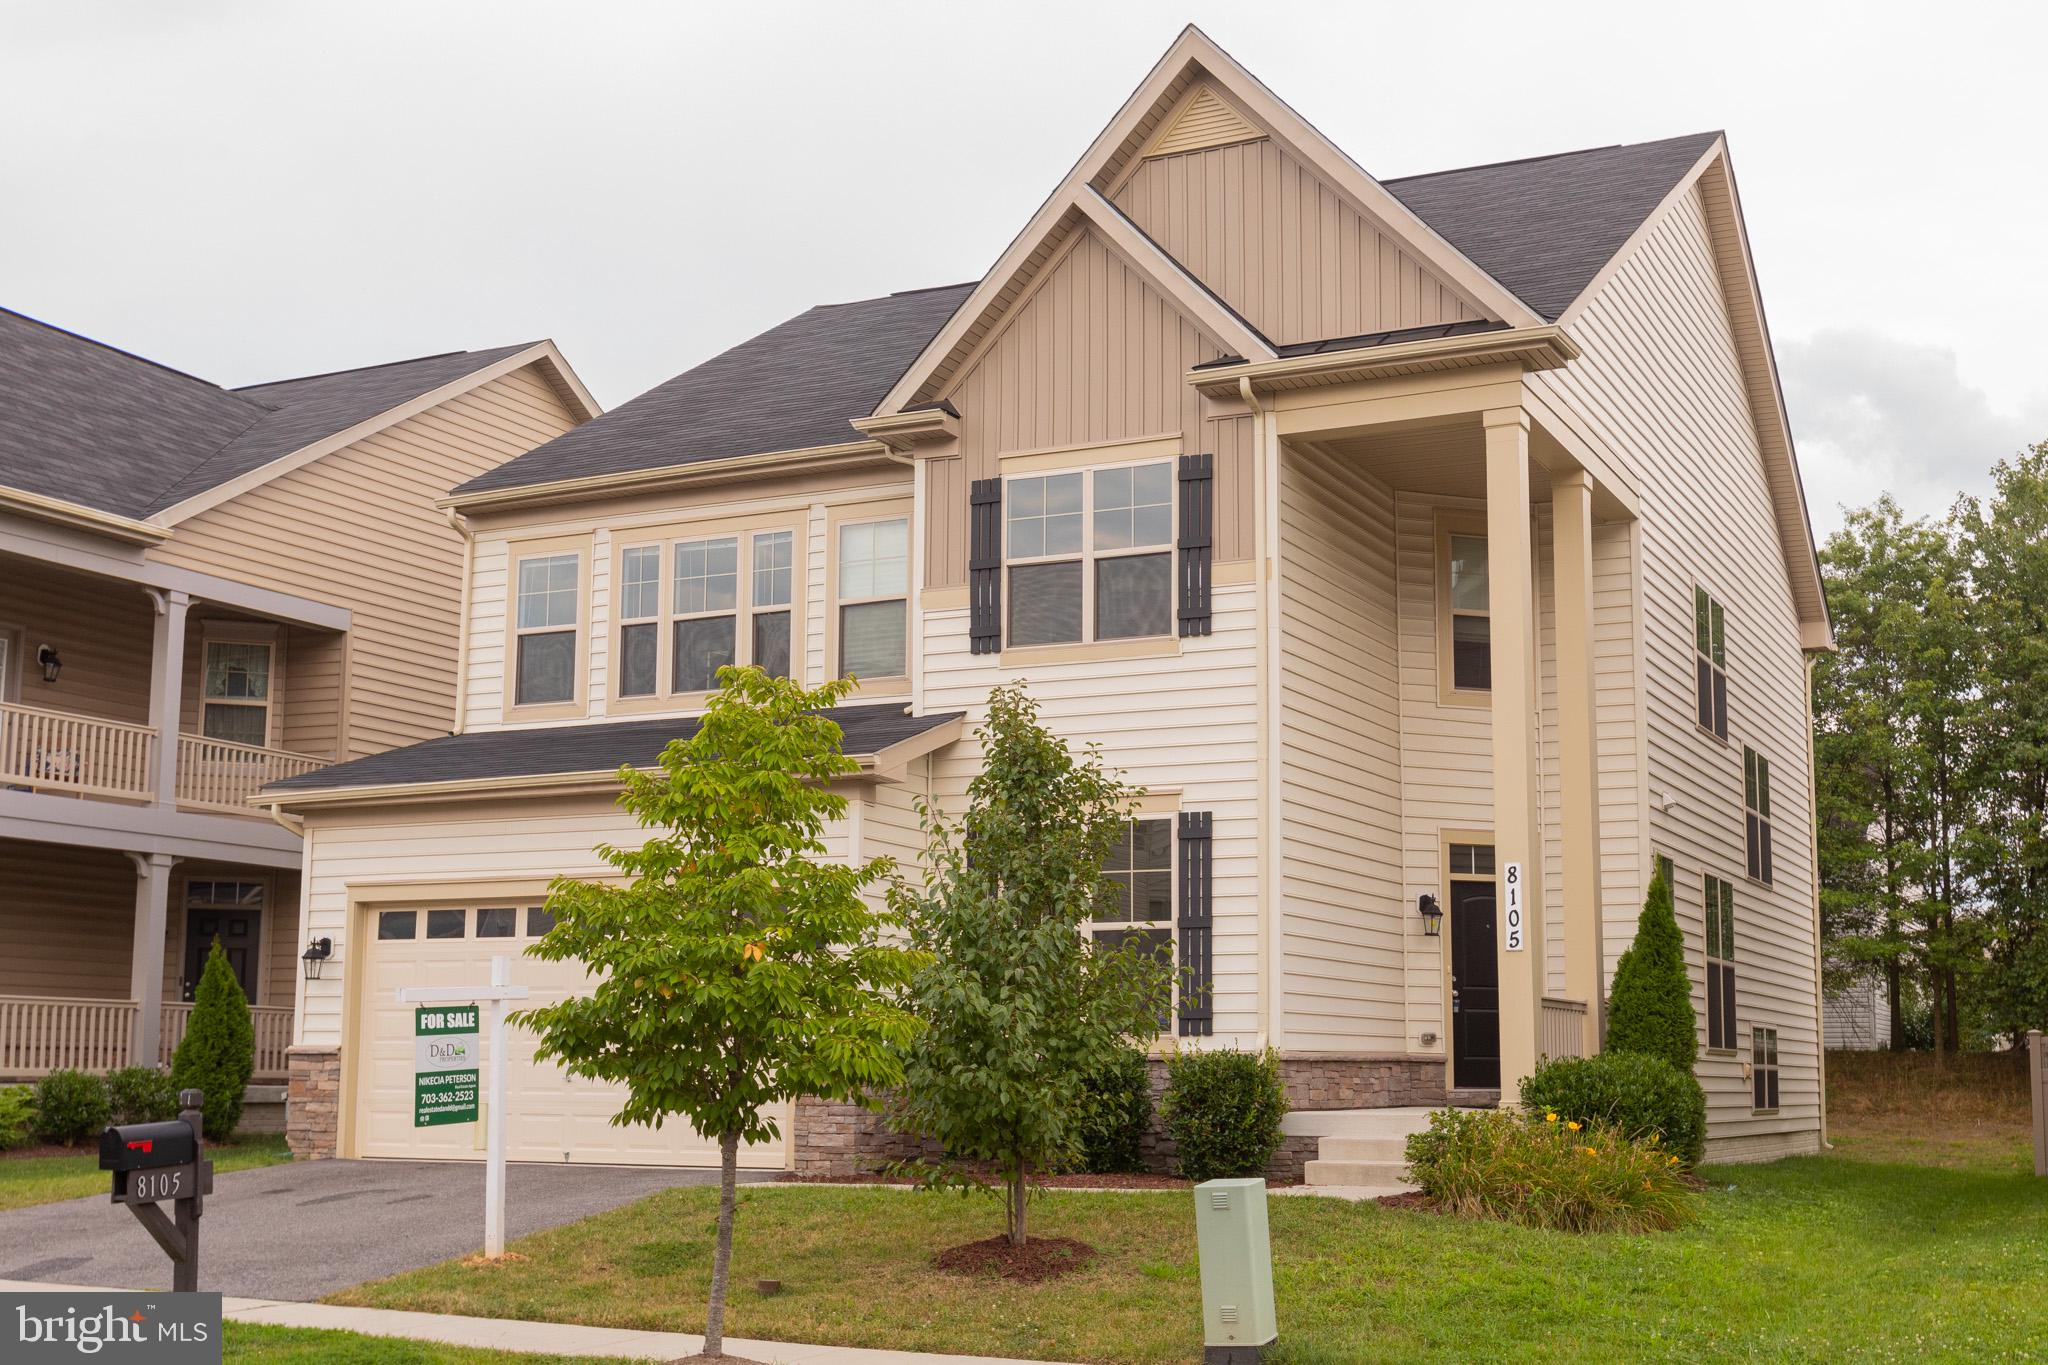 STUNNING & IMMACULATE 5 BEDROOMS & 4.5 BATHS SINGLE FAMILY HOME IN A FANTASTIC COMMUTER LOCATION WIT